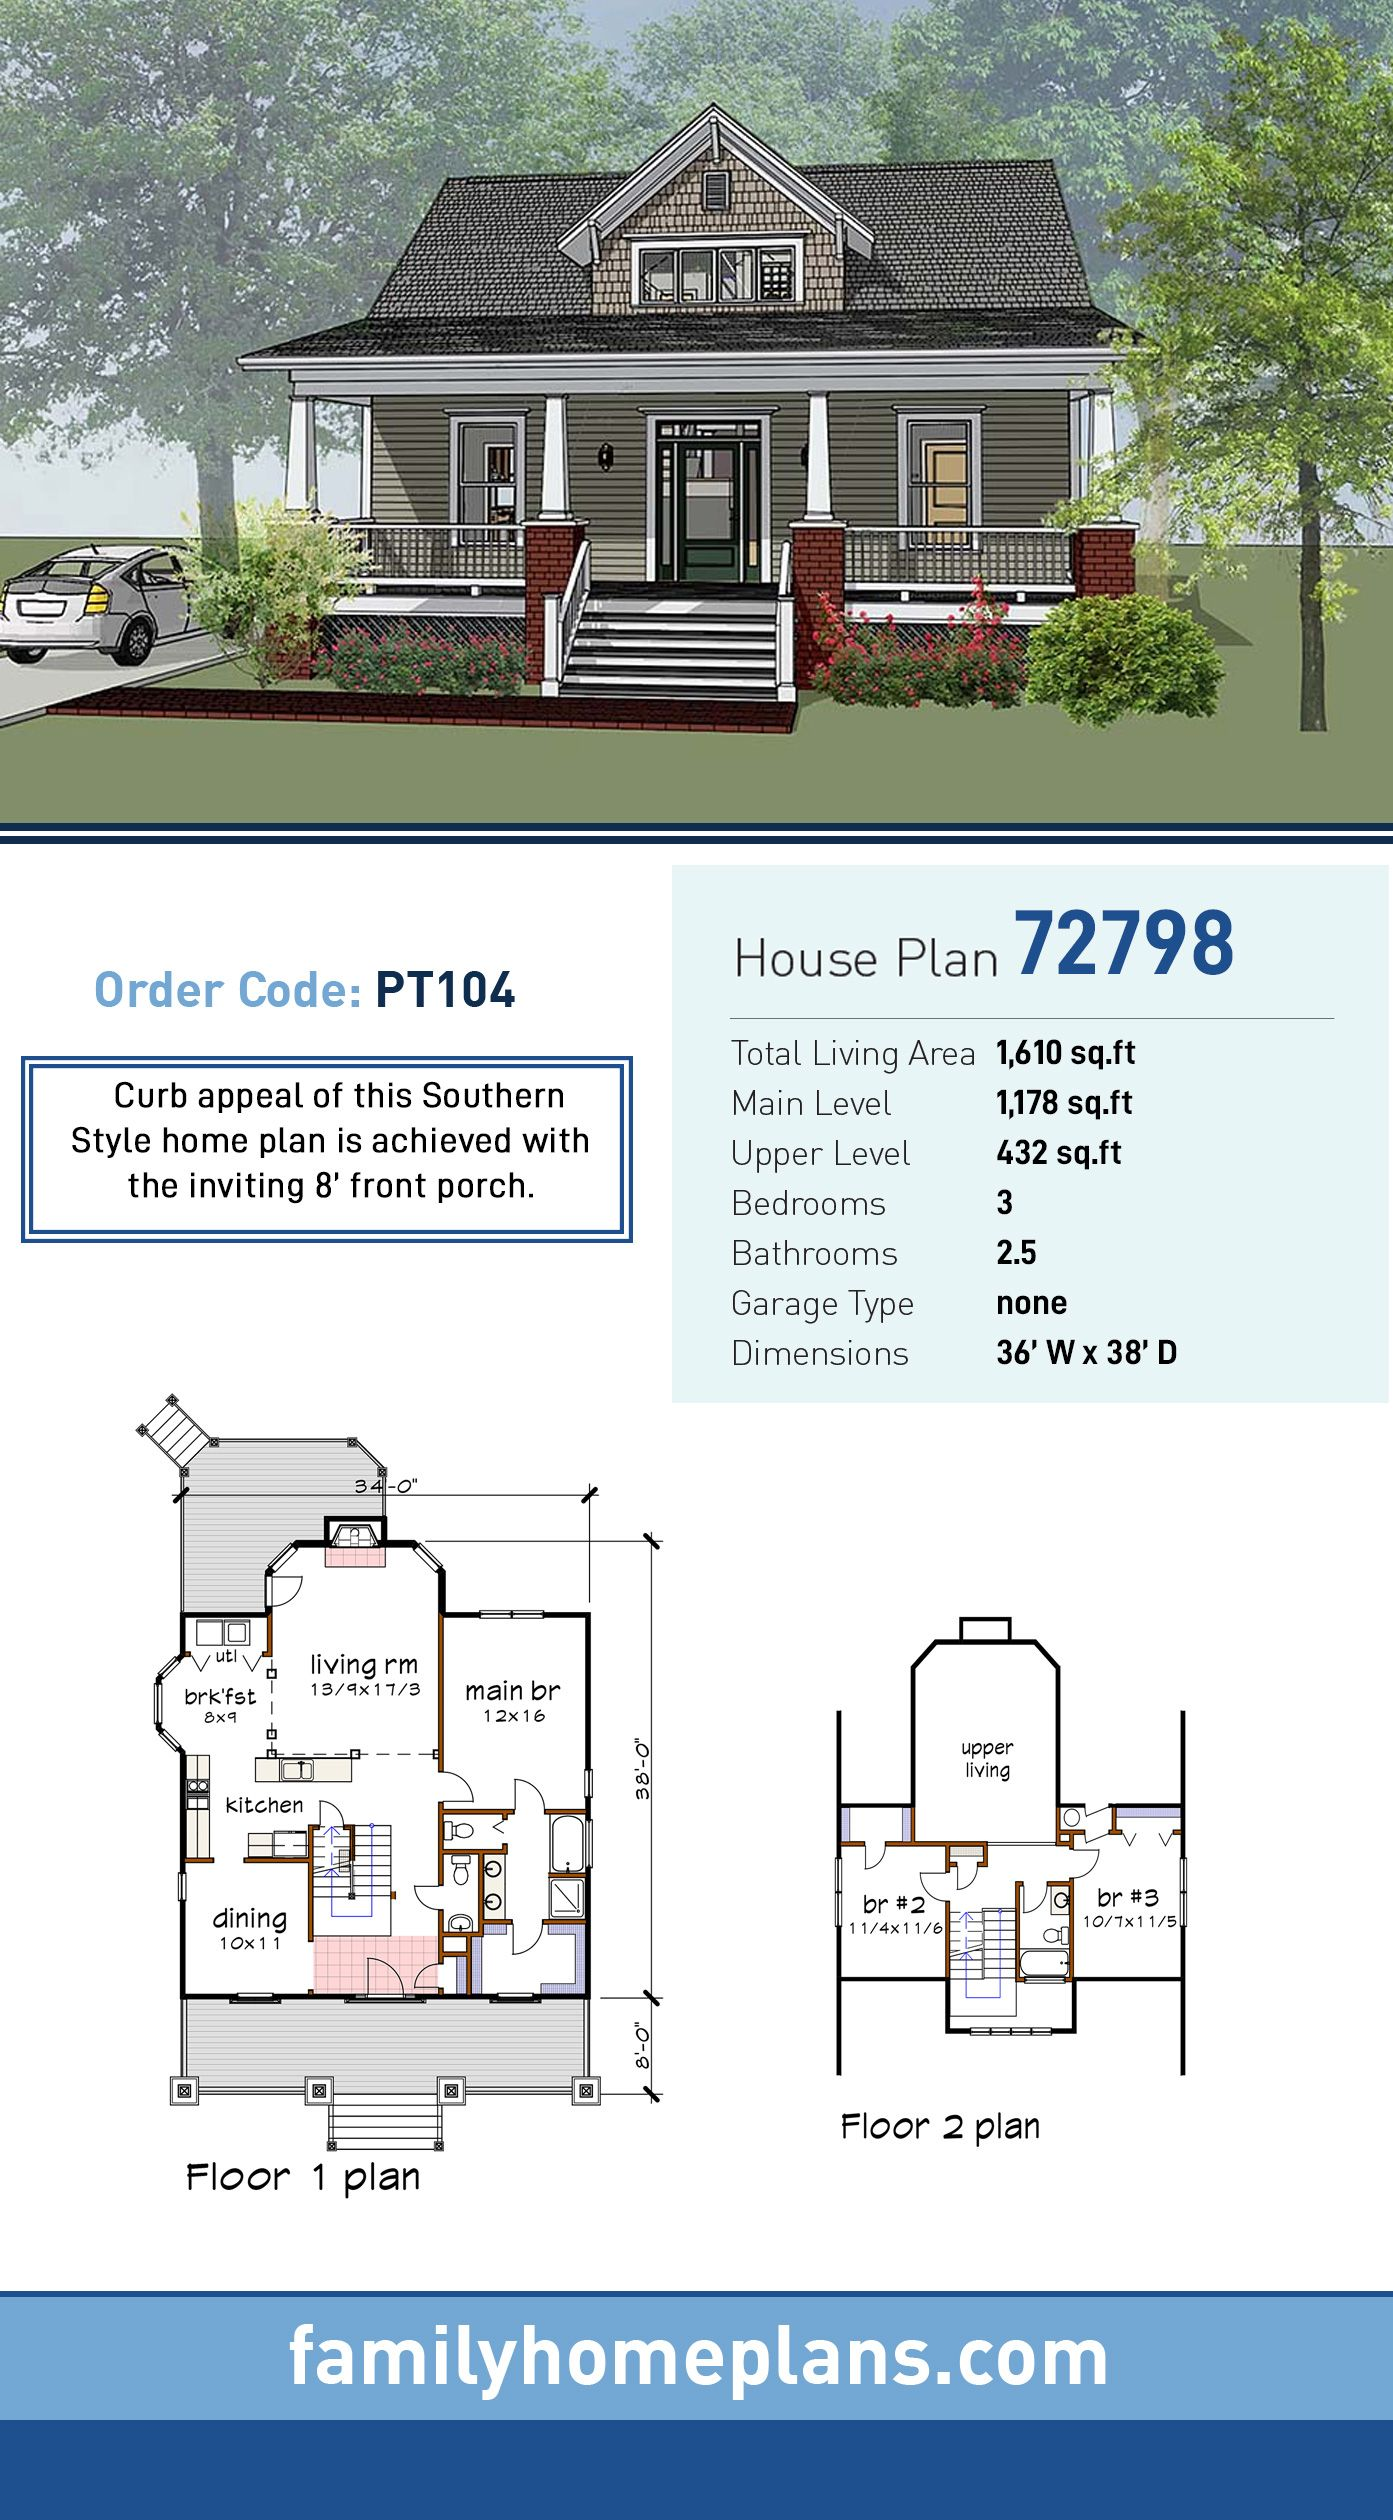 Craftsman Style House Plan 72798 With 3 Bed 3 Bath Craftsman Style House Plans Craftsman House Plans Craftsman House